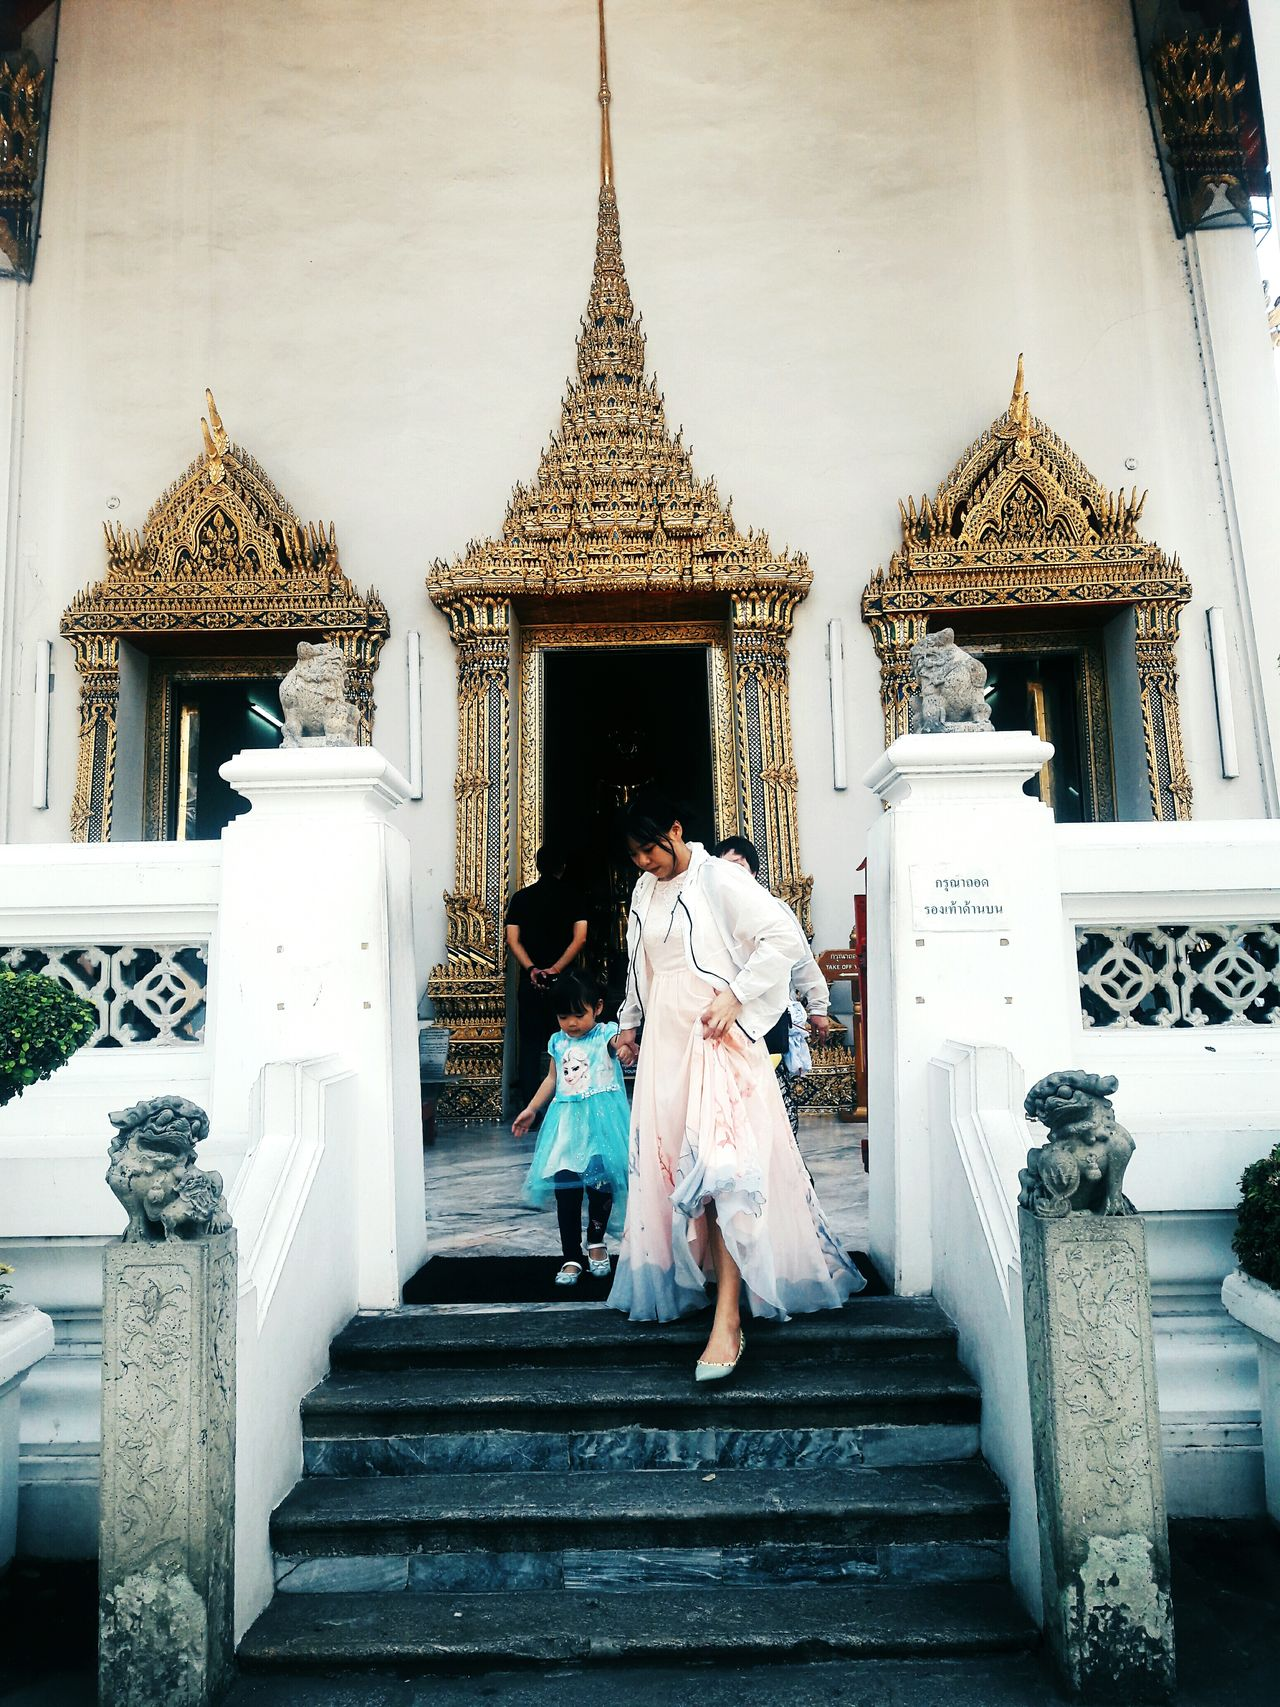 Gold Capture The Moment Culture And Tradition Perspective Partoftemple Photography Thailand Bangkok Thailand Wonderful Place Wonderlust Culture Of Thailand Gold Colored Bestcapture Bestmoment Momanddaughter Love Folk